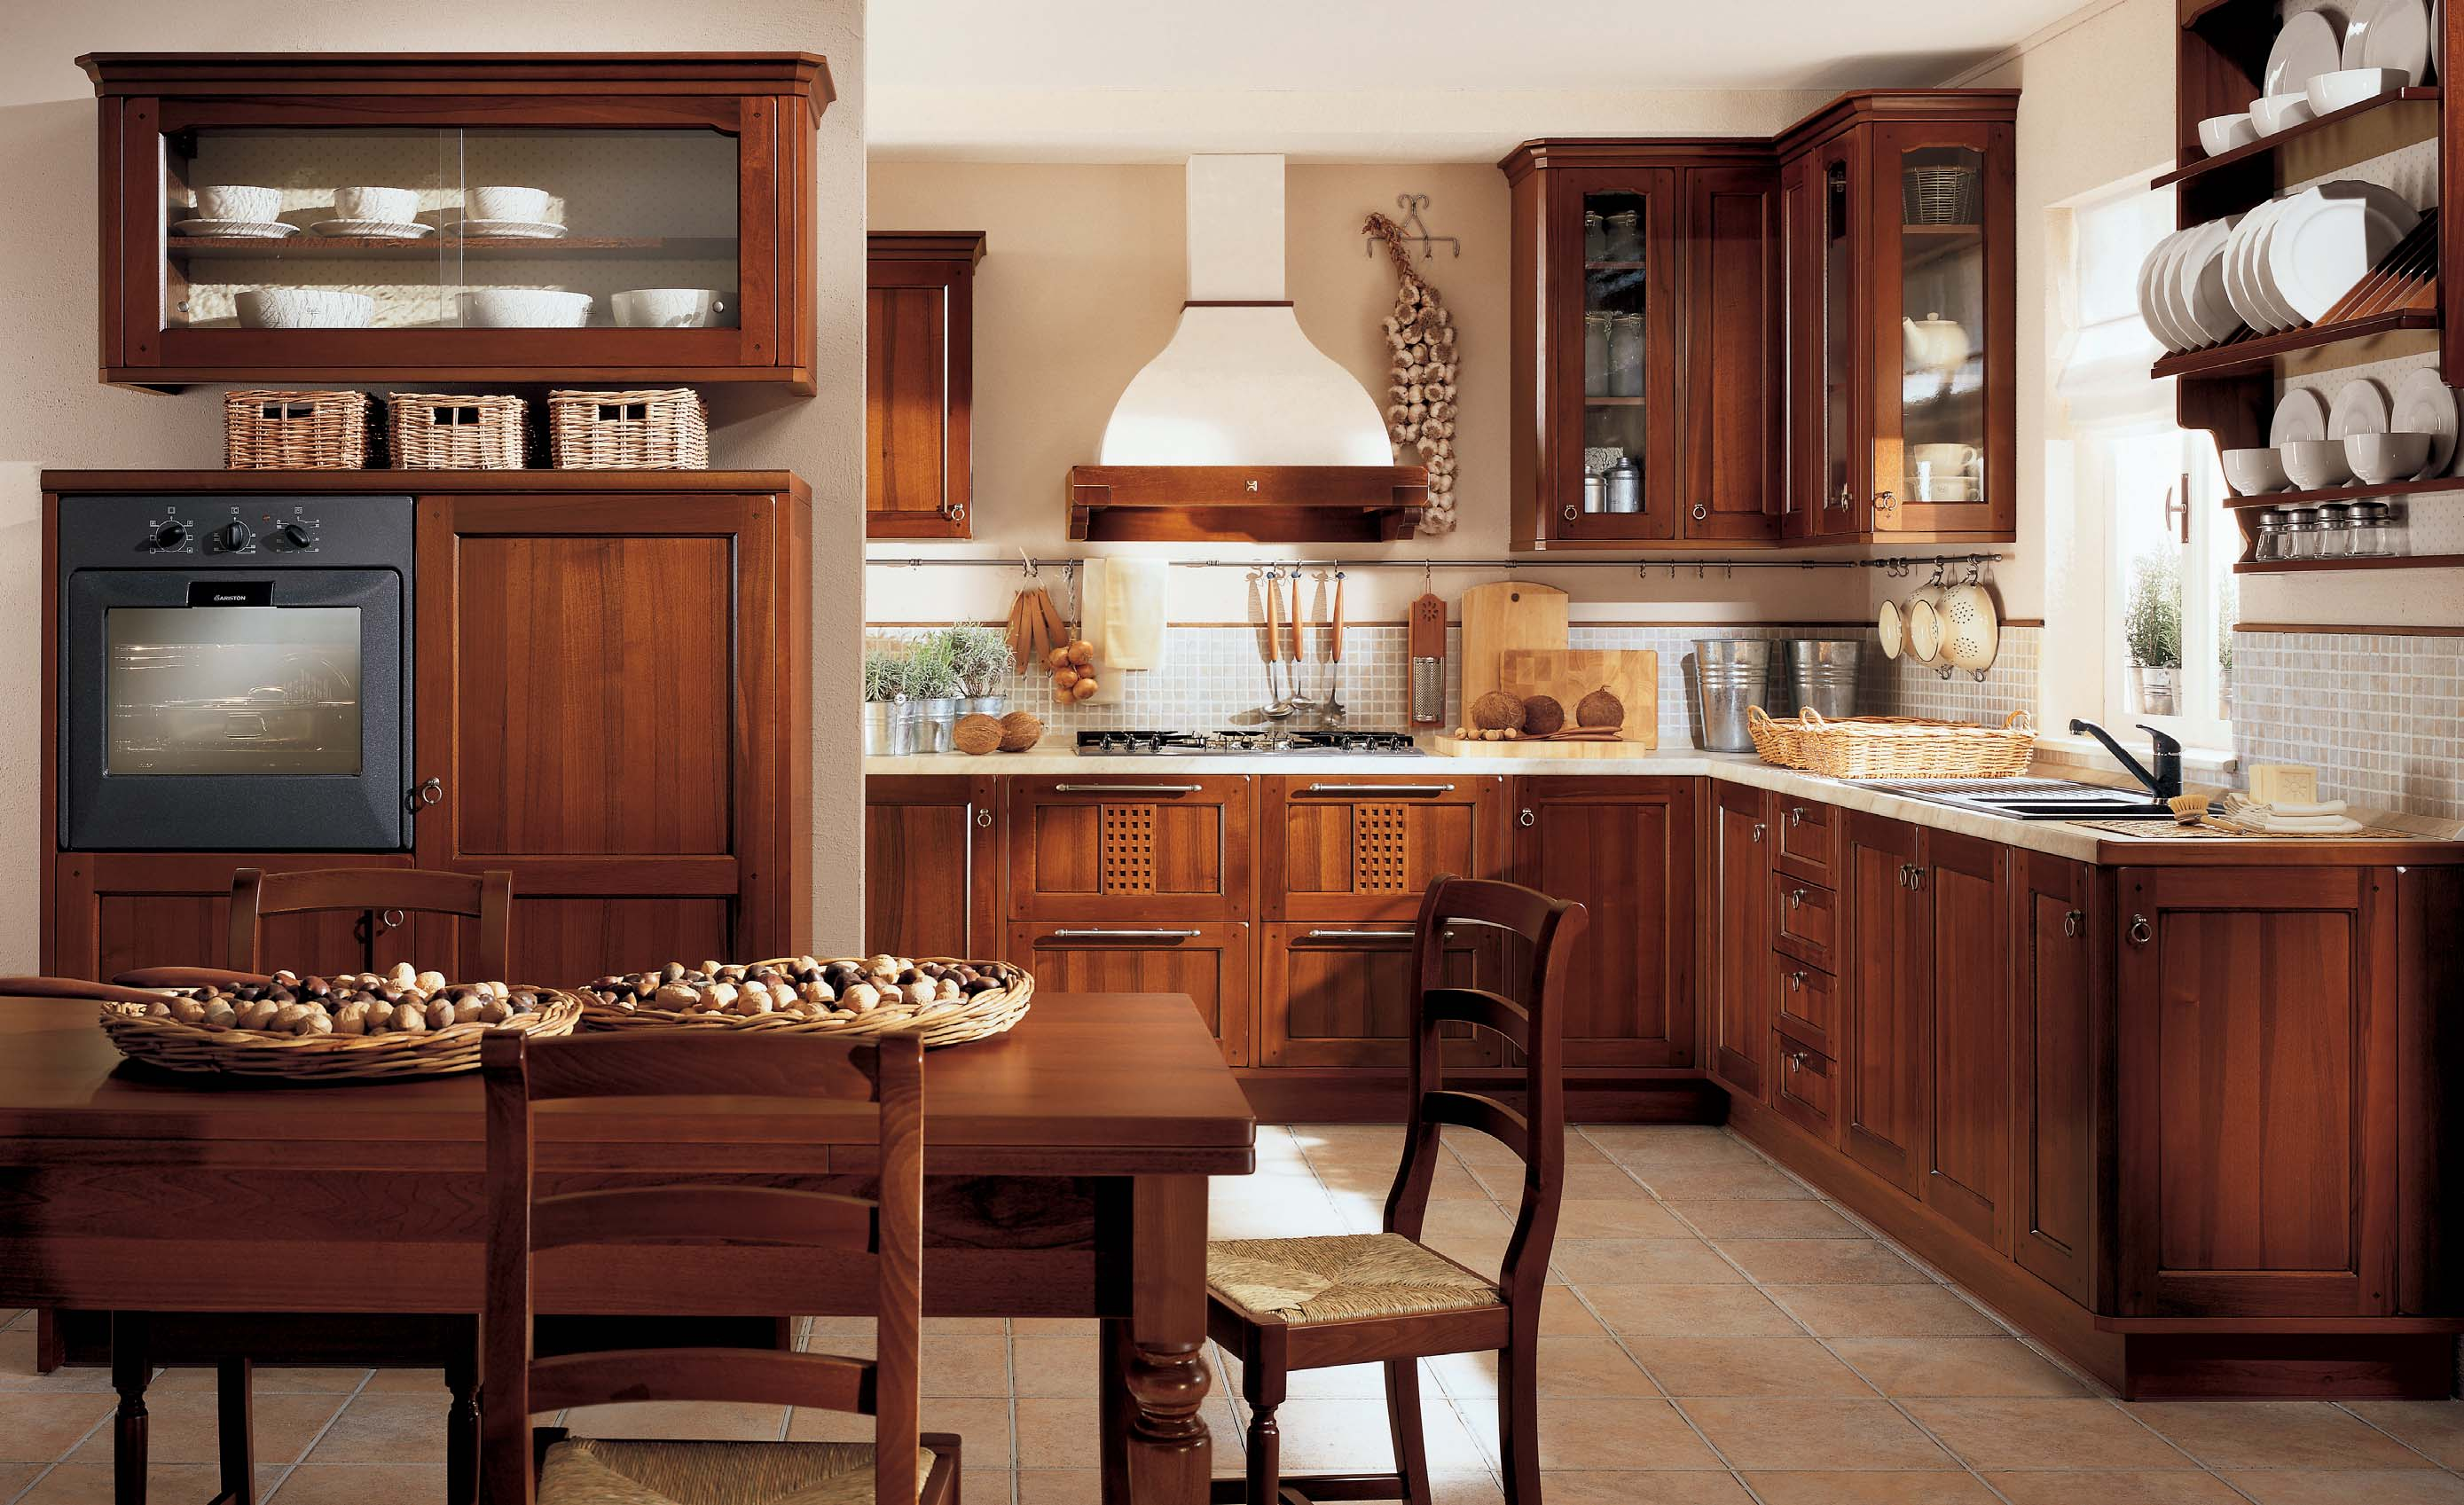 small-classic-lirica-kitchen-interior-design